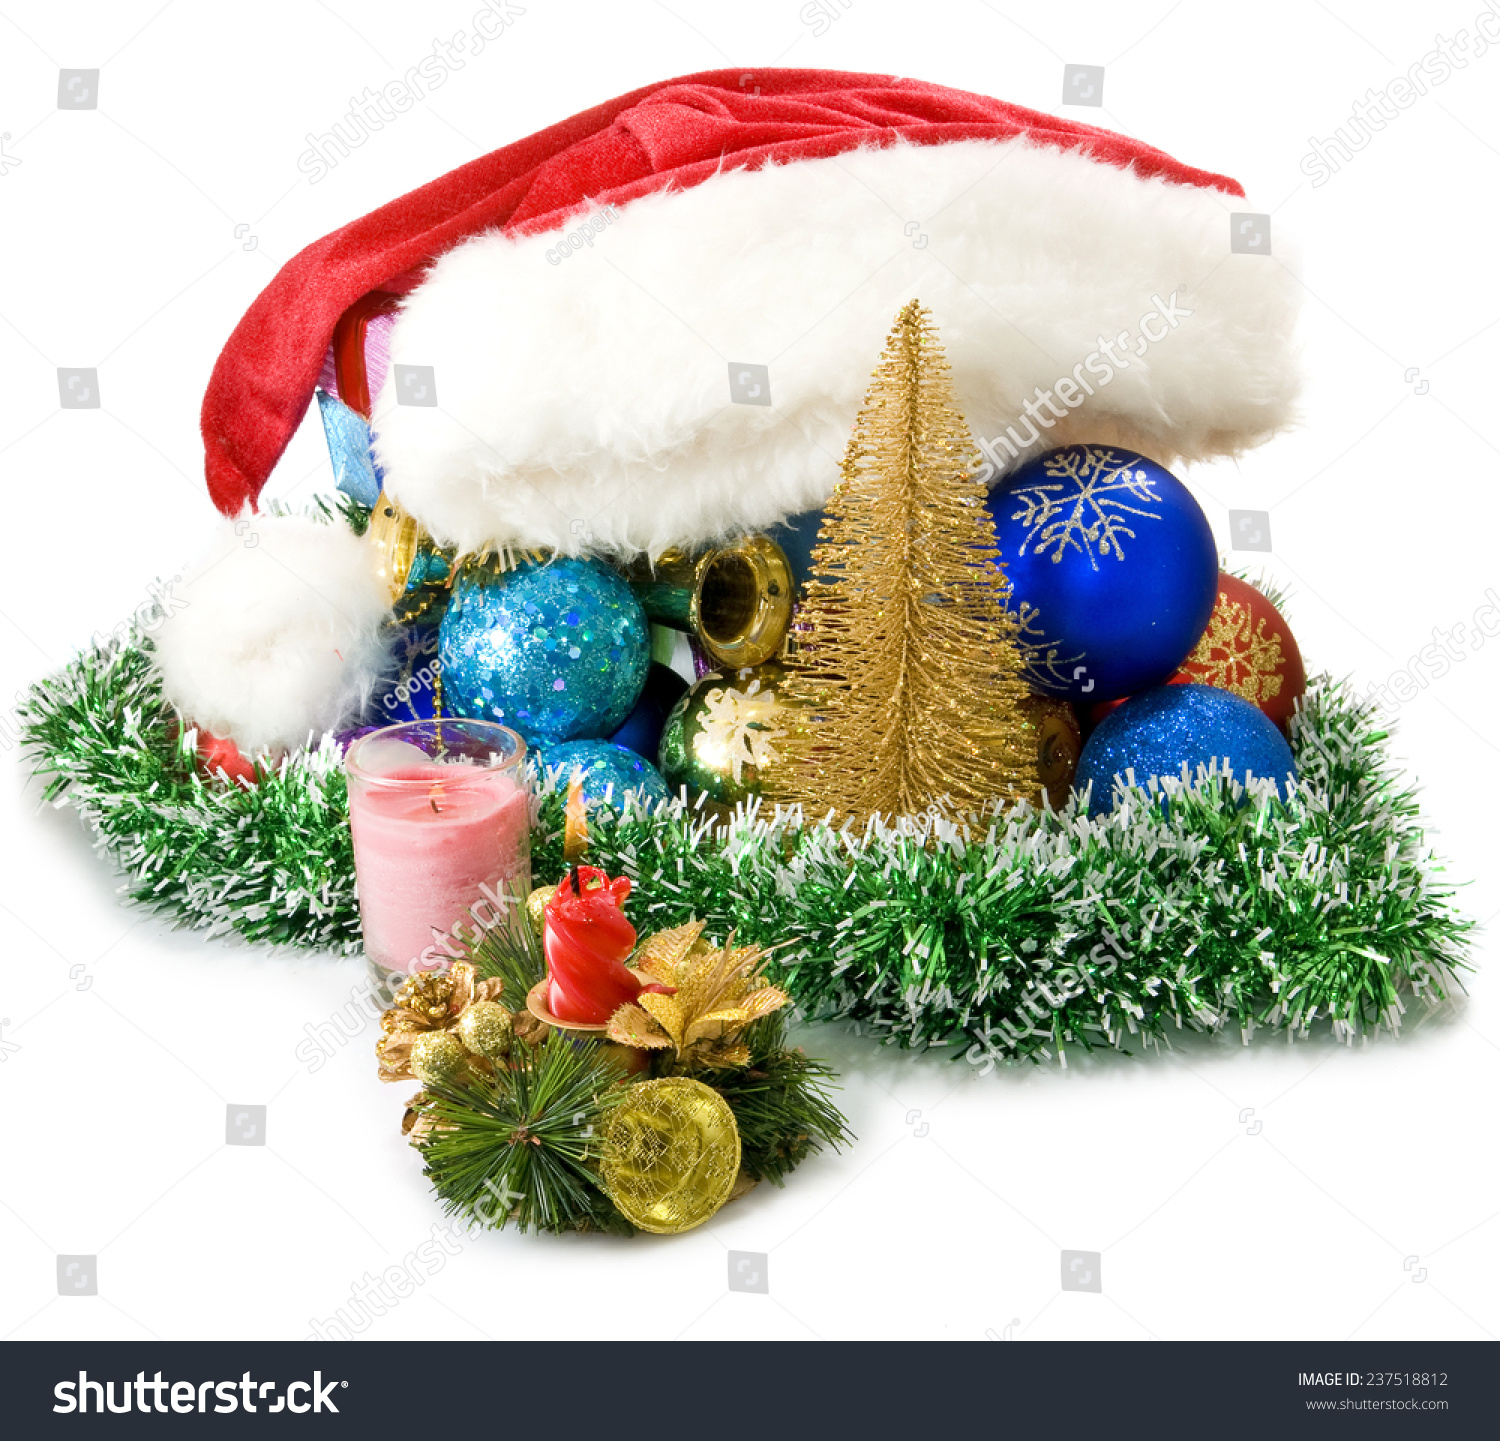 isolated image of different christmas decorations - Different Christmas Decorations